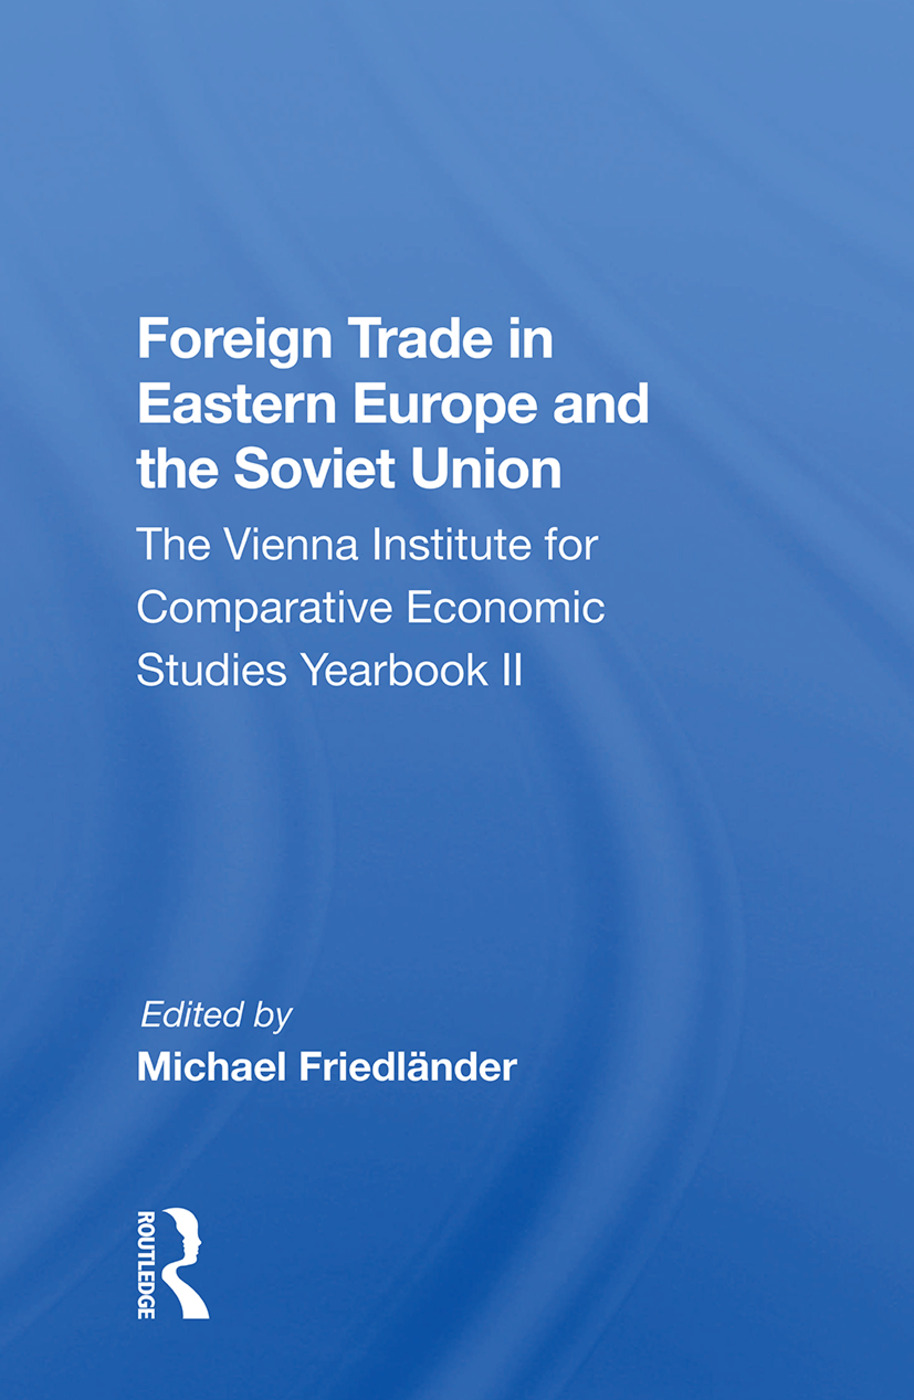 Foreign Trade In Eastern Europe And The Soviet Union: The Vienna Institute For Comparative Economic Studies Yearbook Ii, 1st Edition (Paperback) book cover